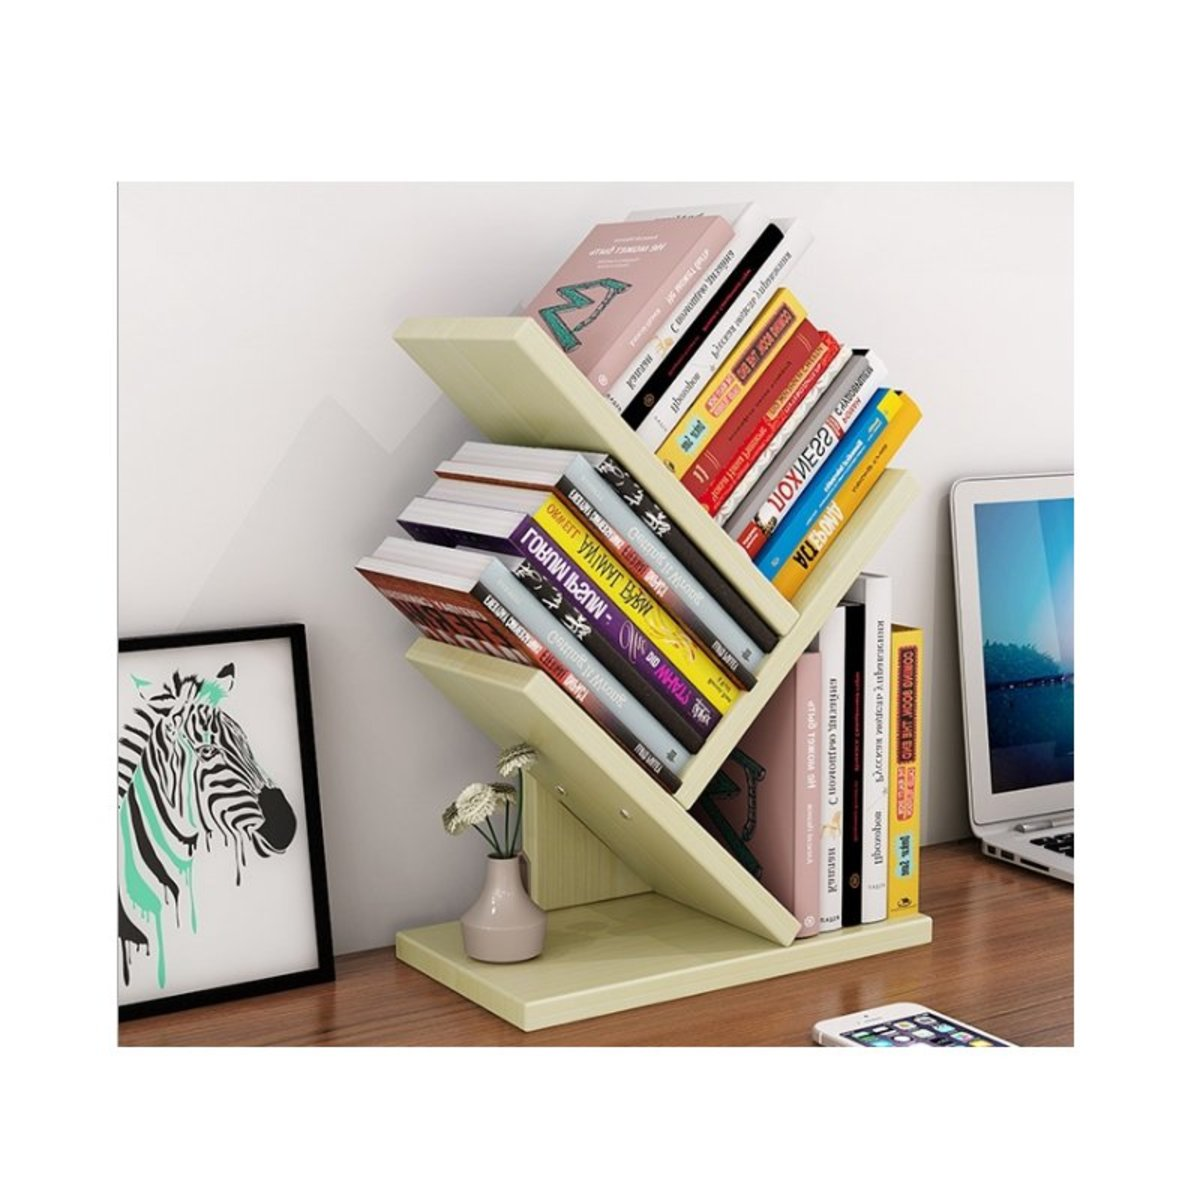 Desktop upright bookshelf